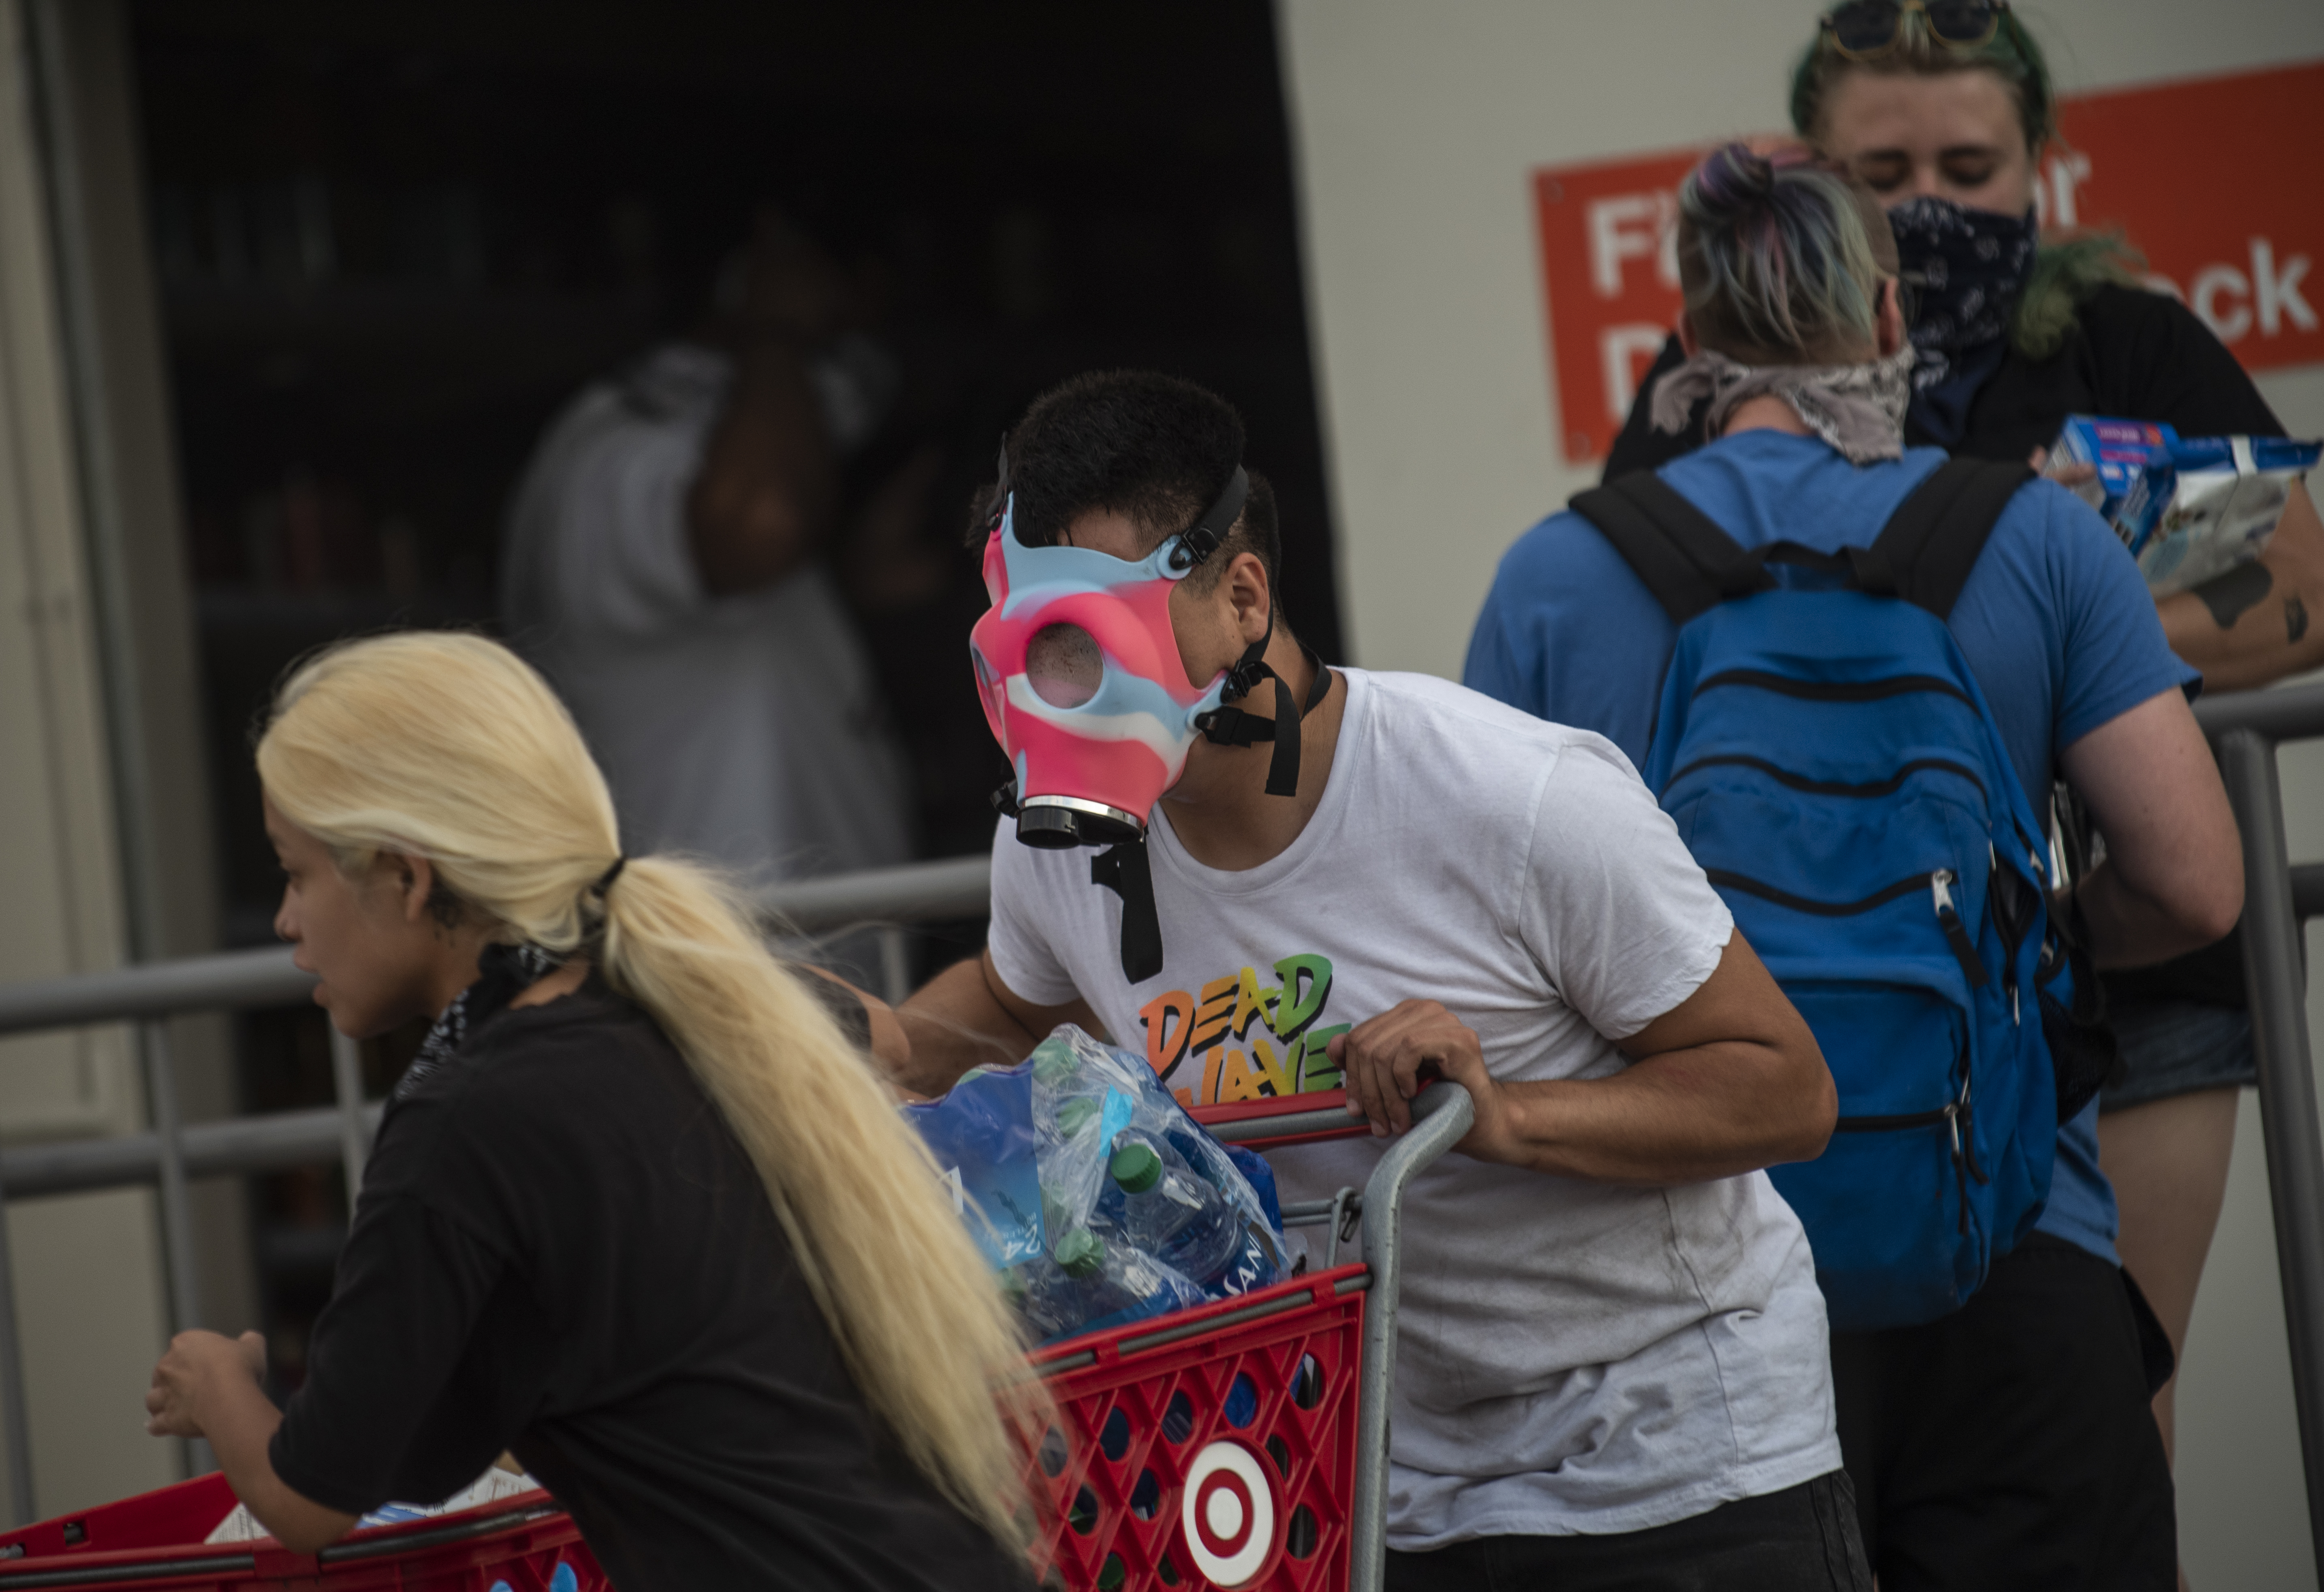 A view outside a Target store on May 27, 2020 in Minneapolis, Minnesota. (Stephen Maturen/Getty Images)